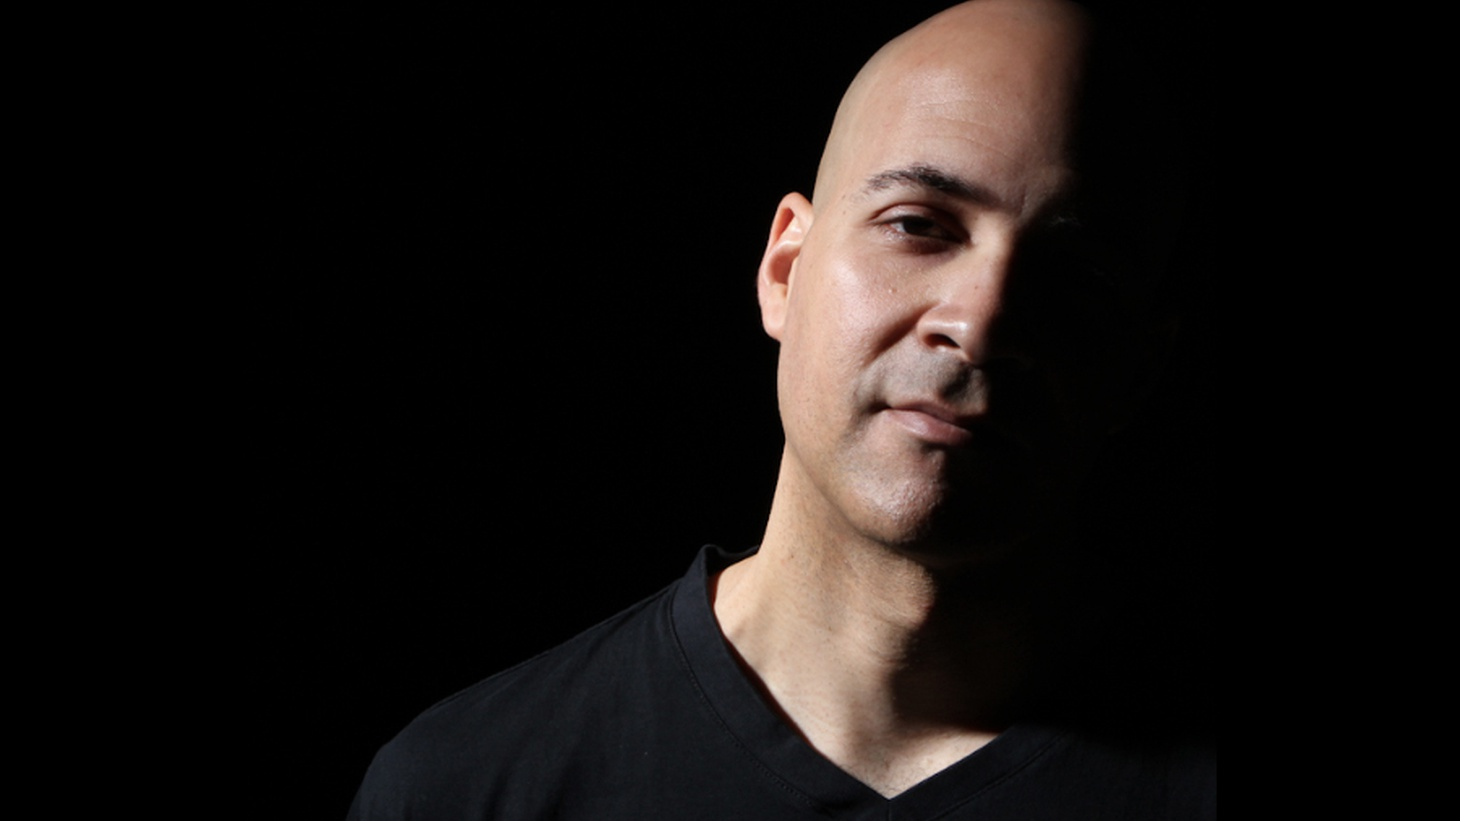 Legendary drummer for The Roots as well as an accomplished producer and DJ, ?uestlove joins Garth Trinidad in the studio.